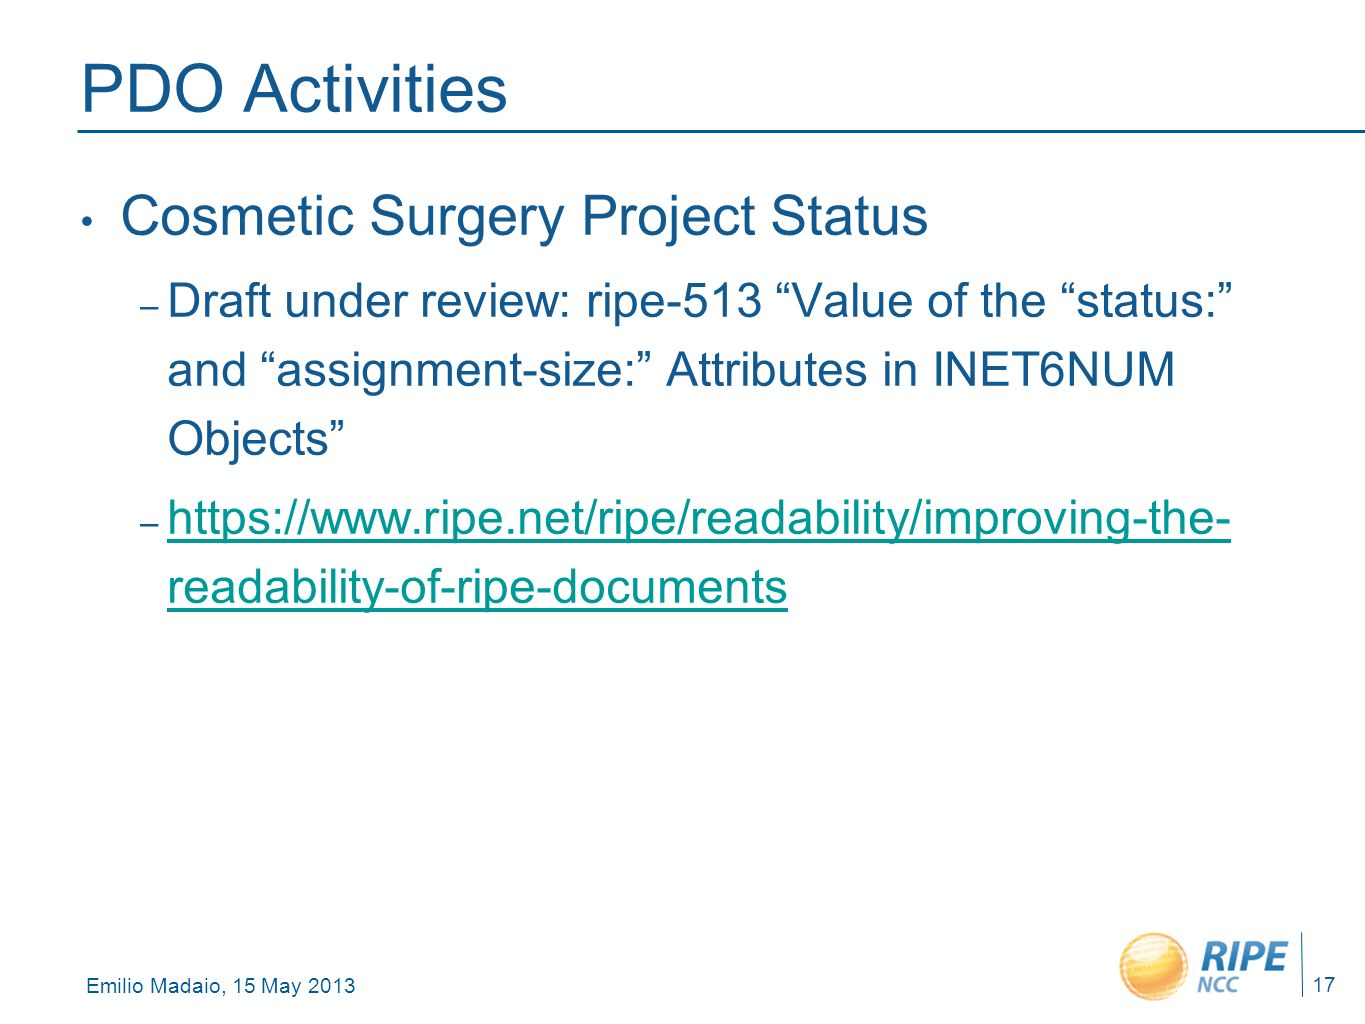 Emilio Madaio, 15 May 2013 17 PDO Activities Cosmetic Surgery Project Status – Draft under review: ripe-513 Value of the status: and assignment-size: Attributes in INET6NUM Objects – https://www.ripe.net/ripe/readability/improving-the- readability-of-ripe-documents https://www.ripe.net/ripe/readability/improving-the- readability-of-ripe-documents